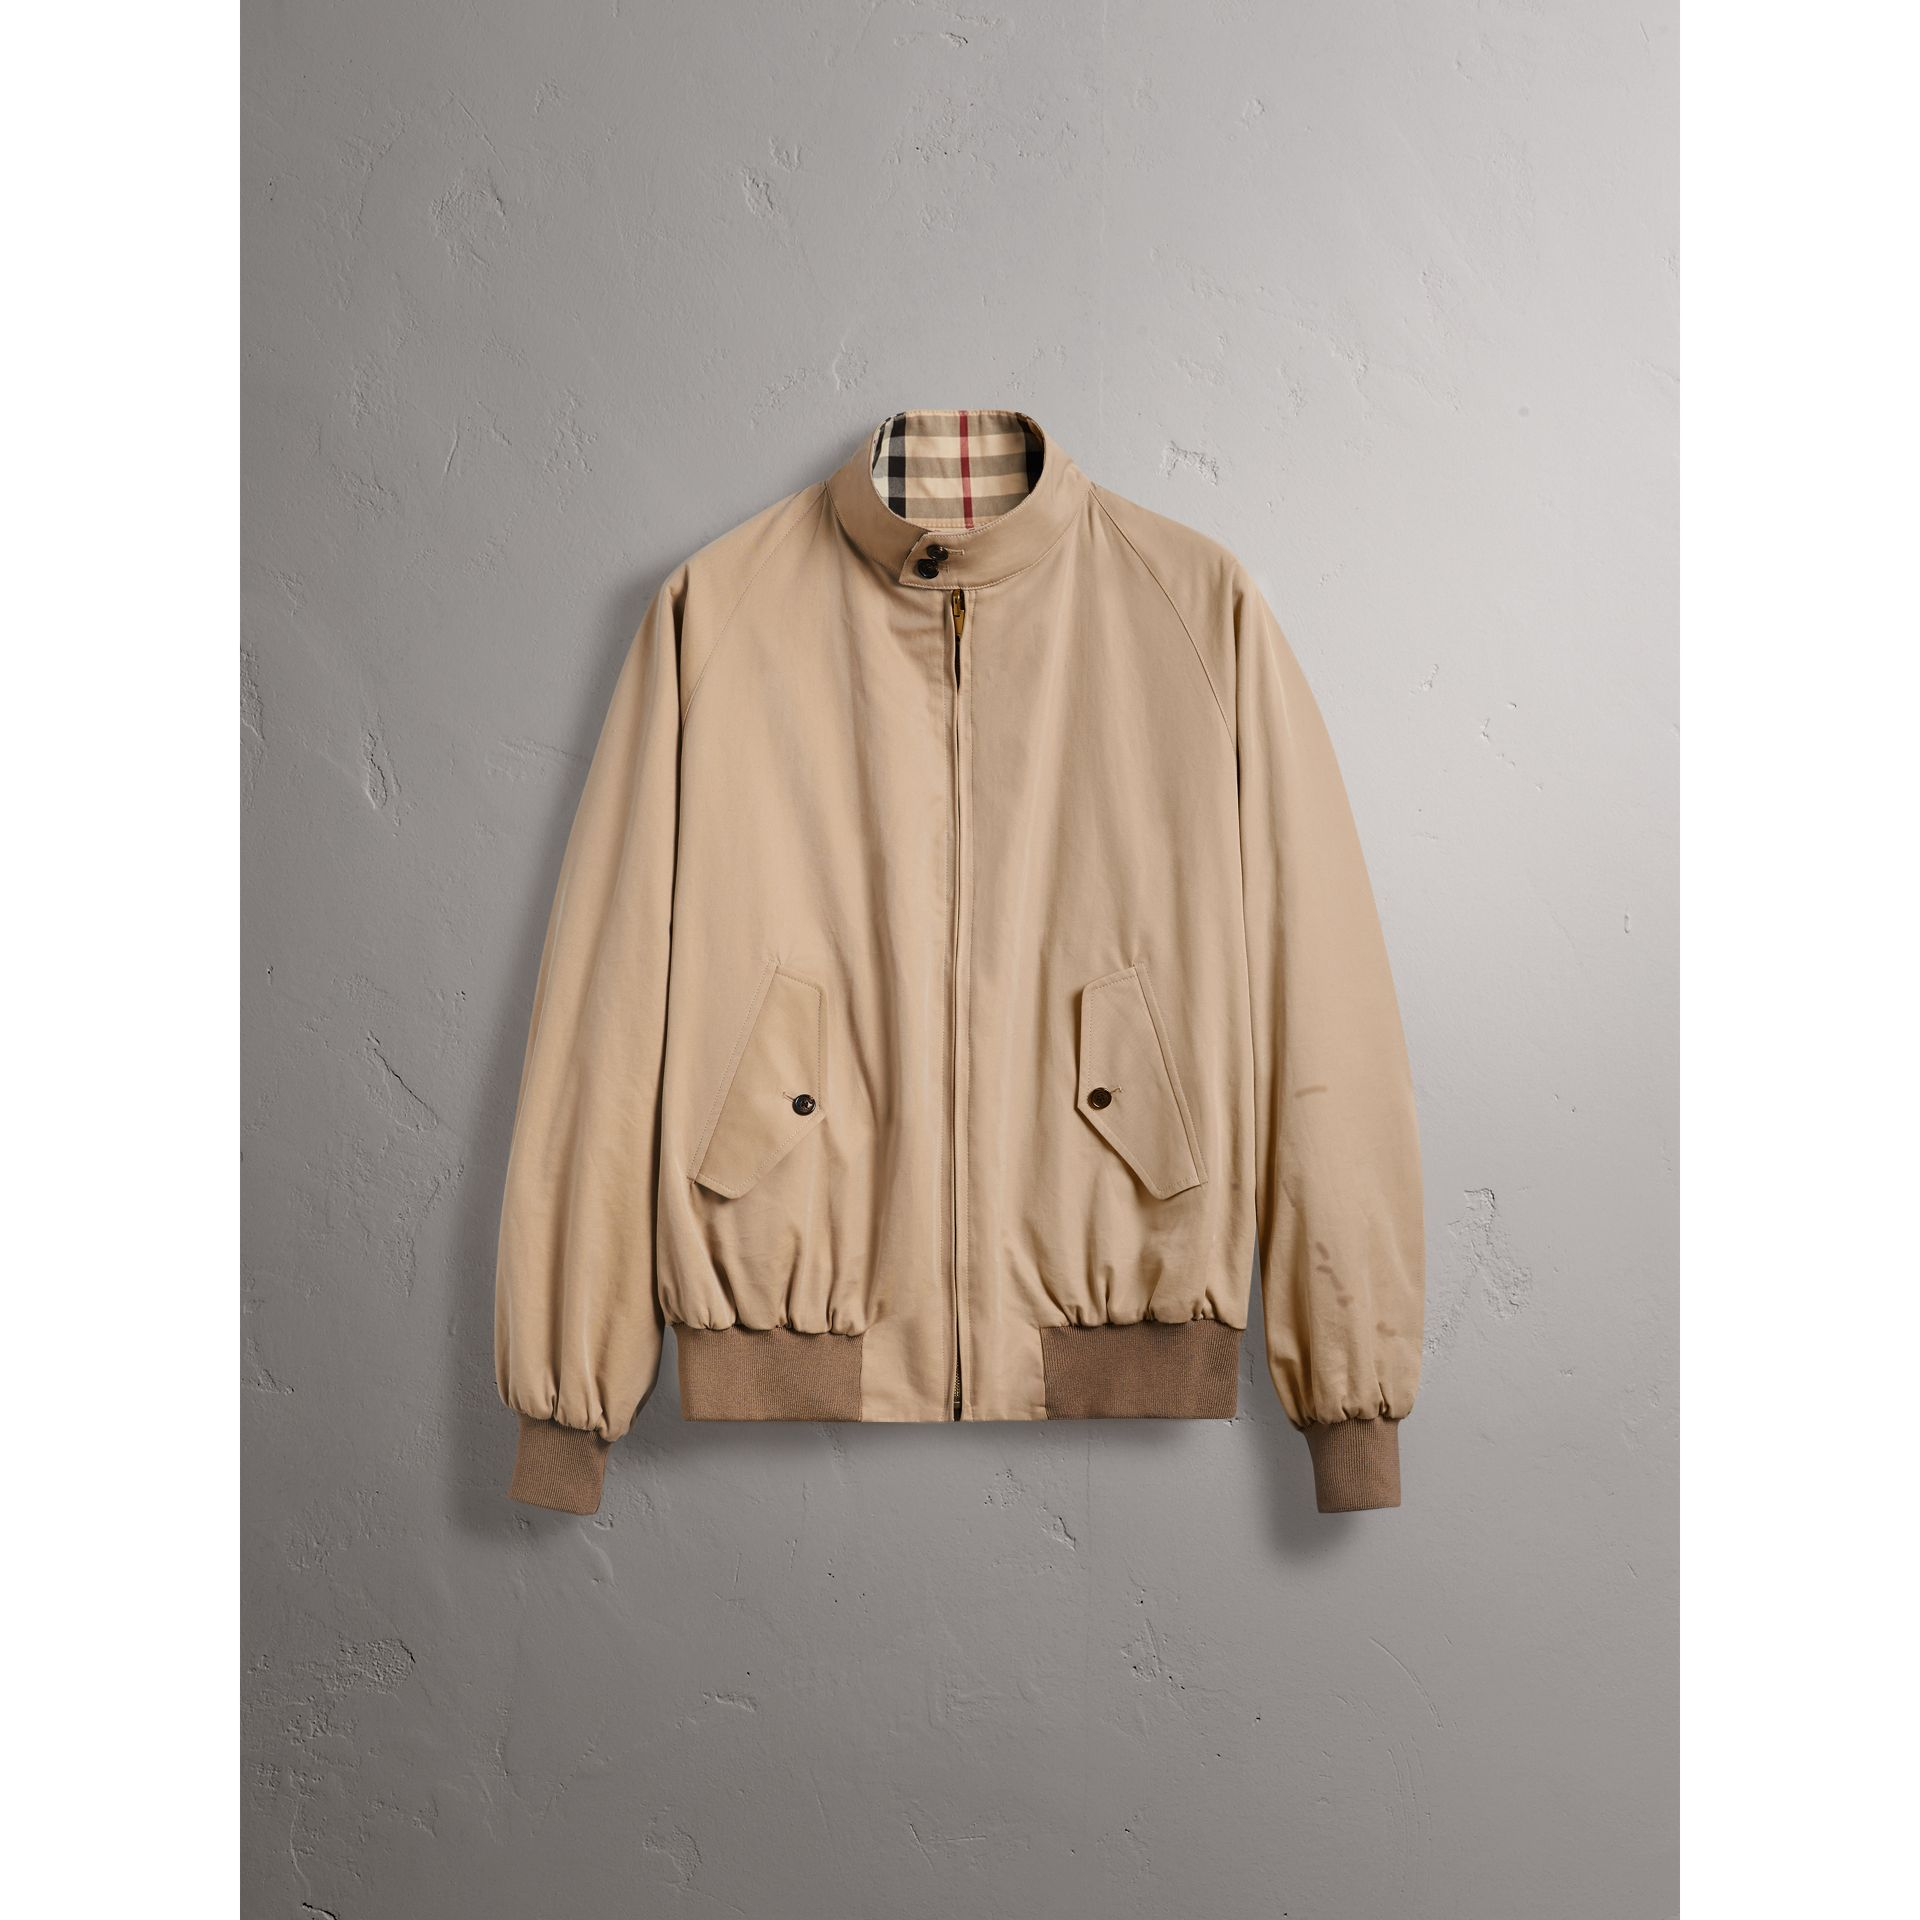 Gosha x Burberry Reversible Harrington Jacket in Honey | Burberry Singapore - gallery image 4